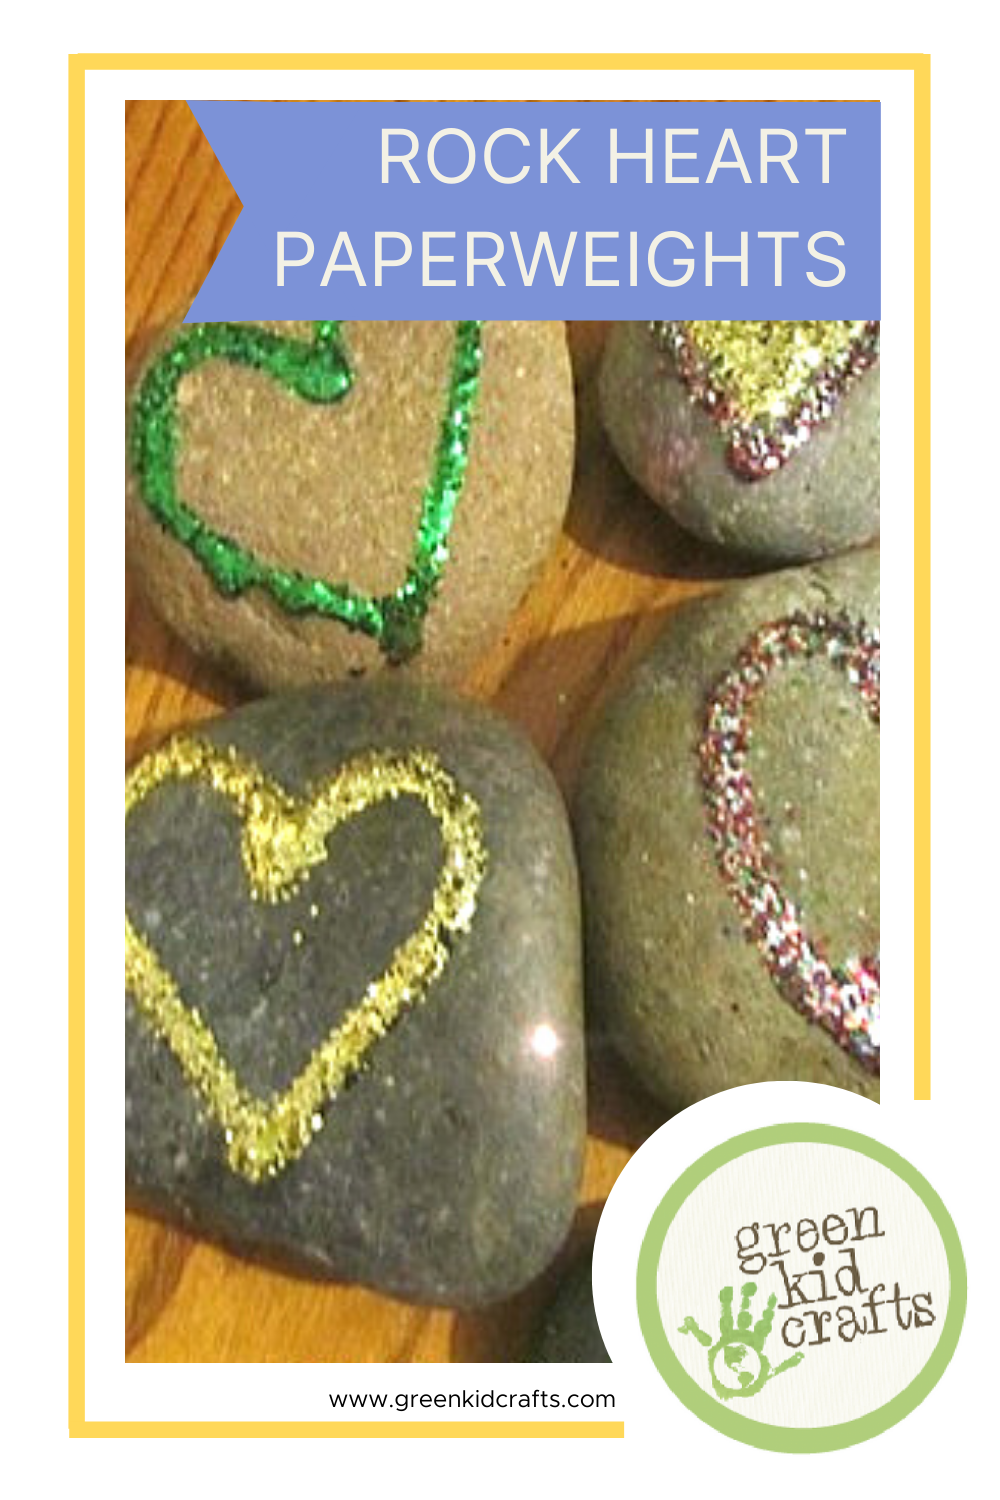 Rock Heart paperweights